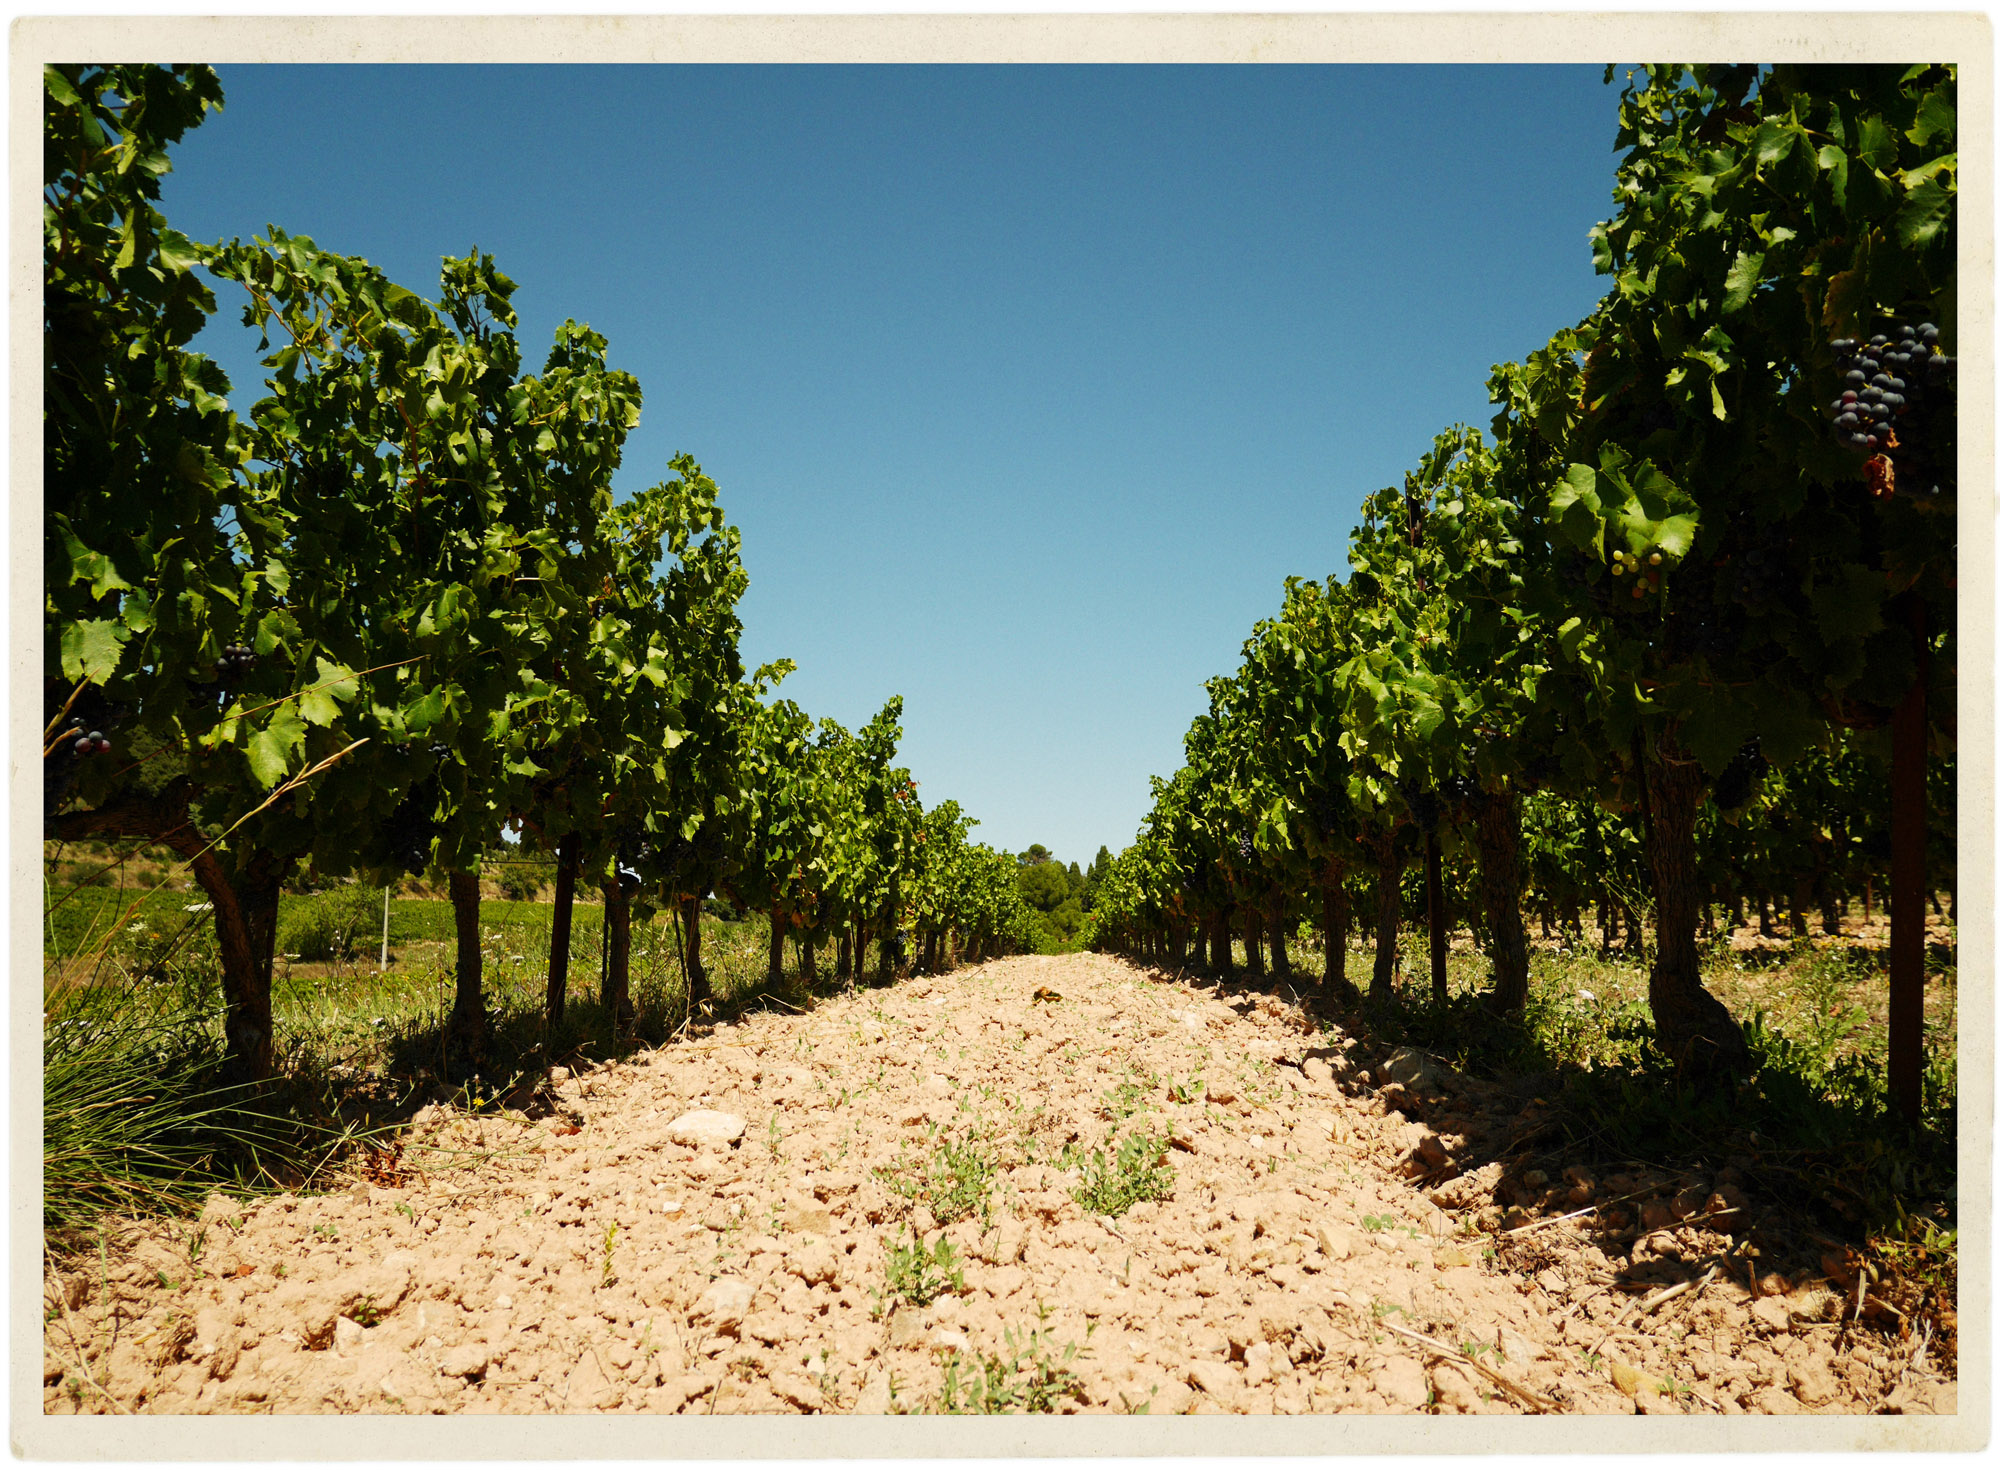 Perfect summery blue sky in the vines.